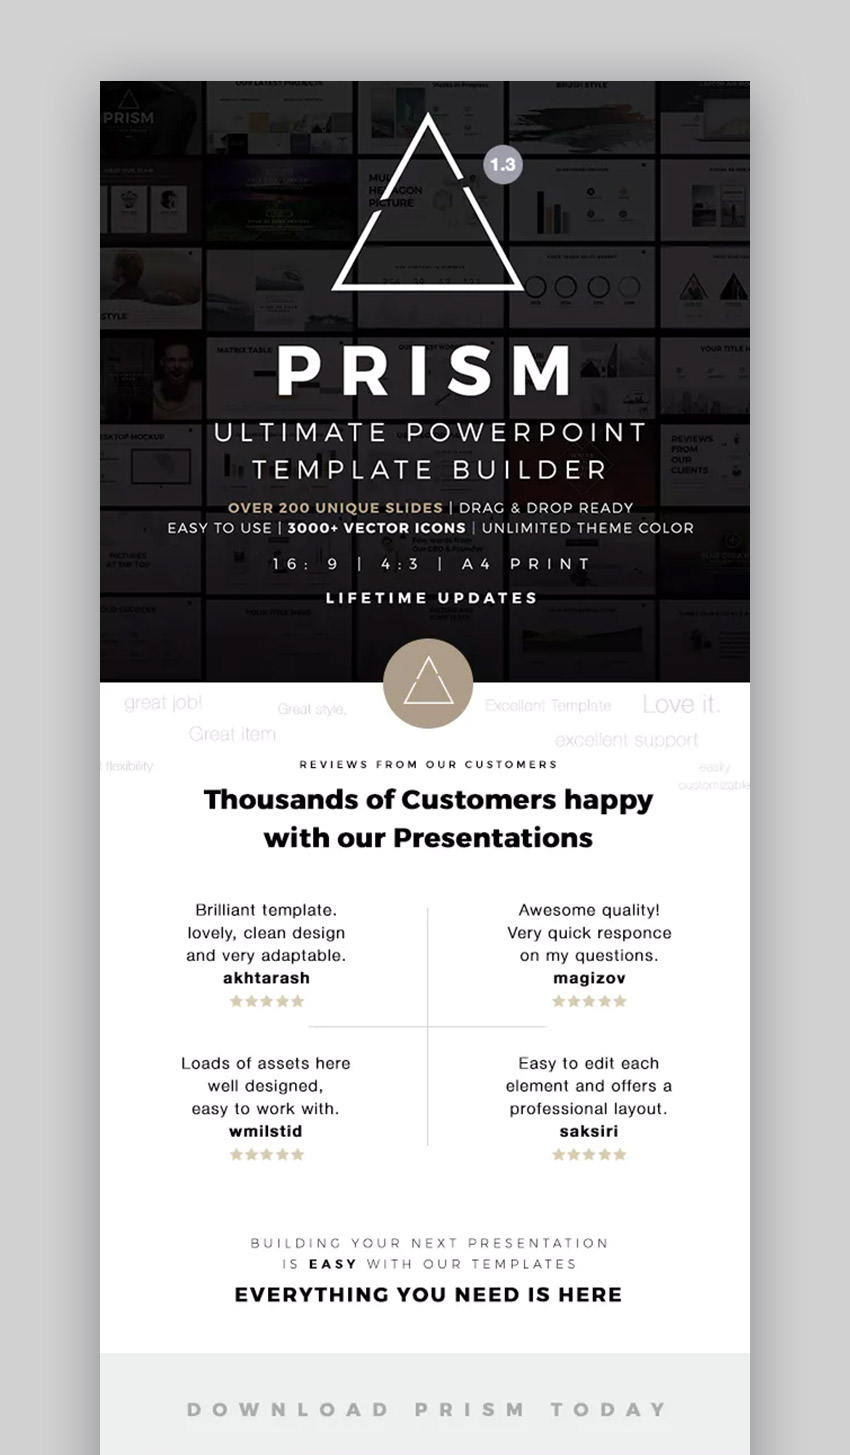 Prism PPT Template